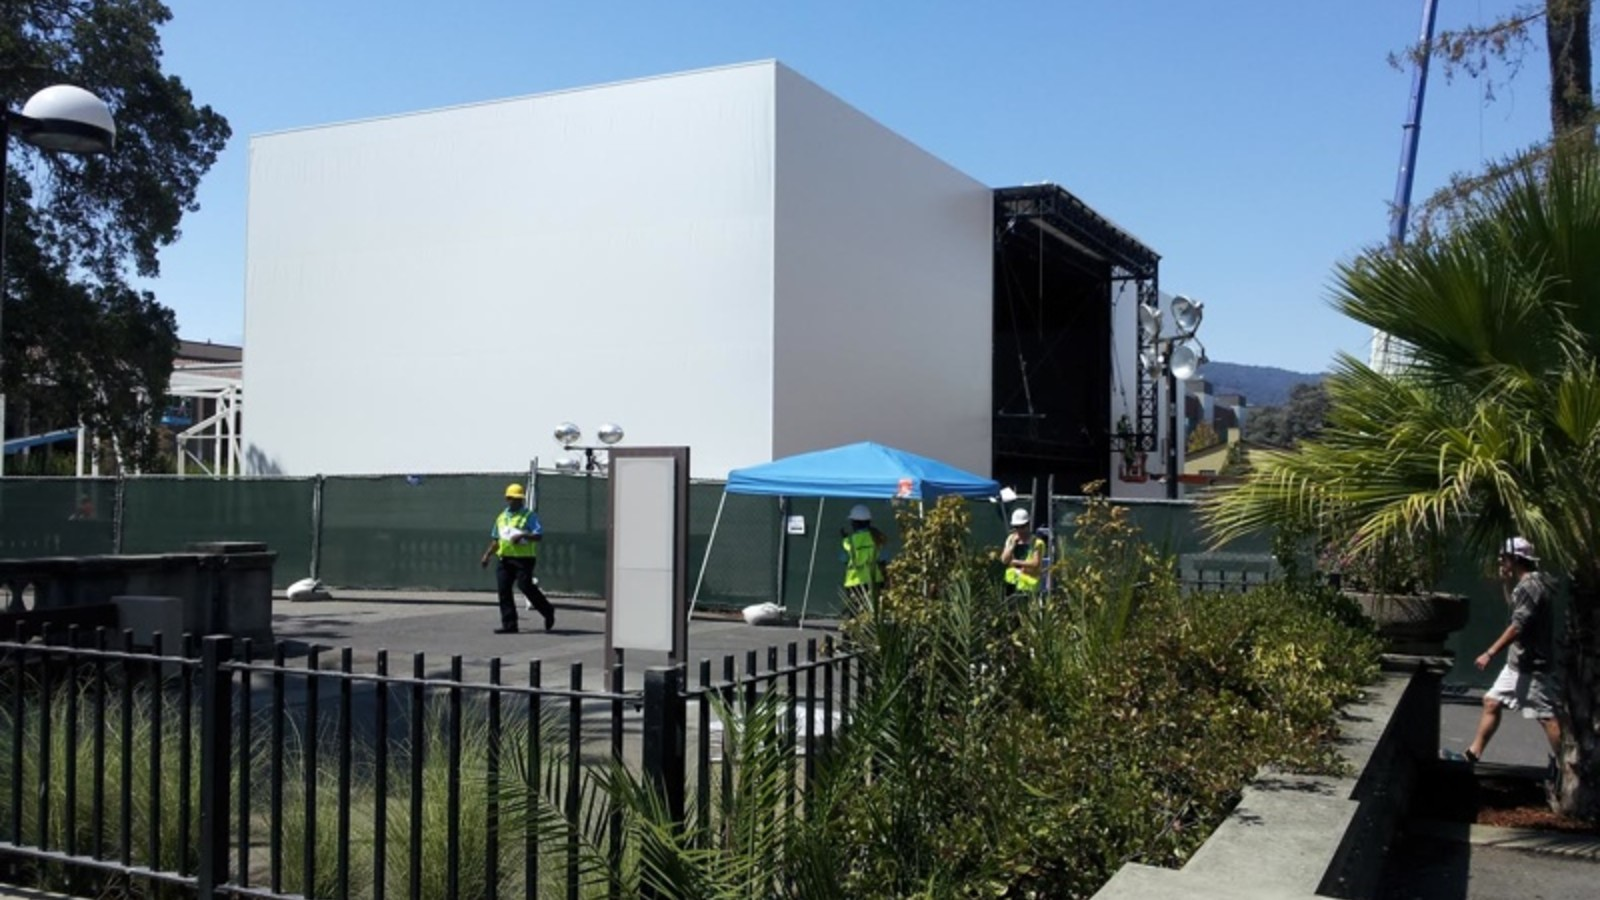 Apple constructing large building at Flint Center ahead of September event